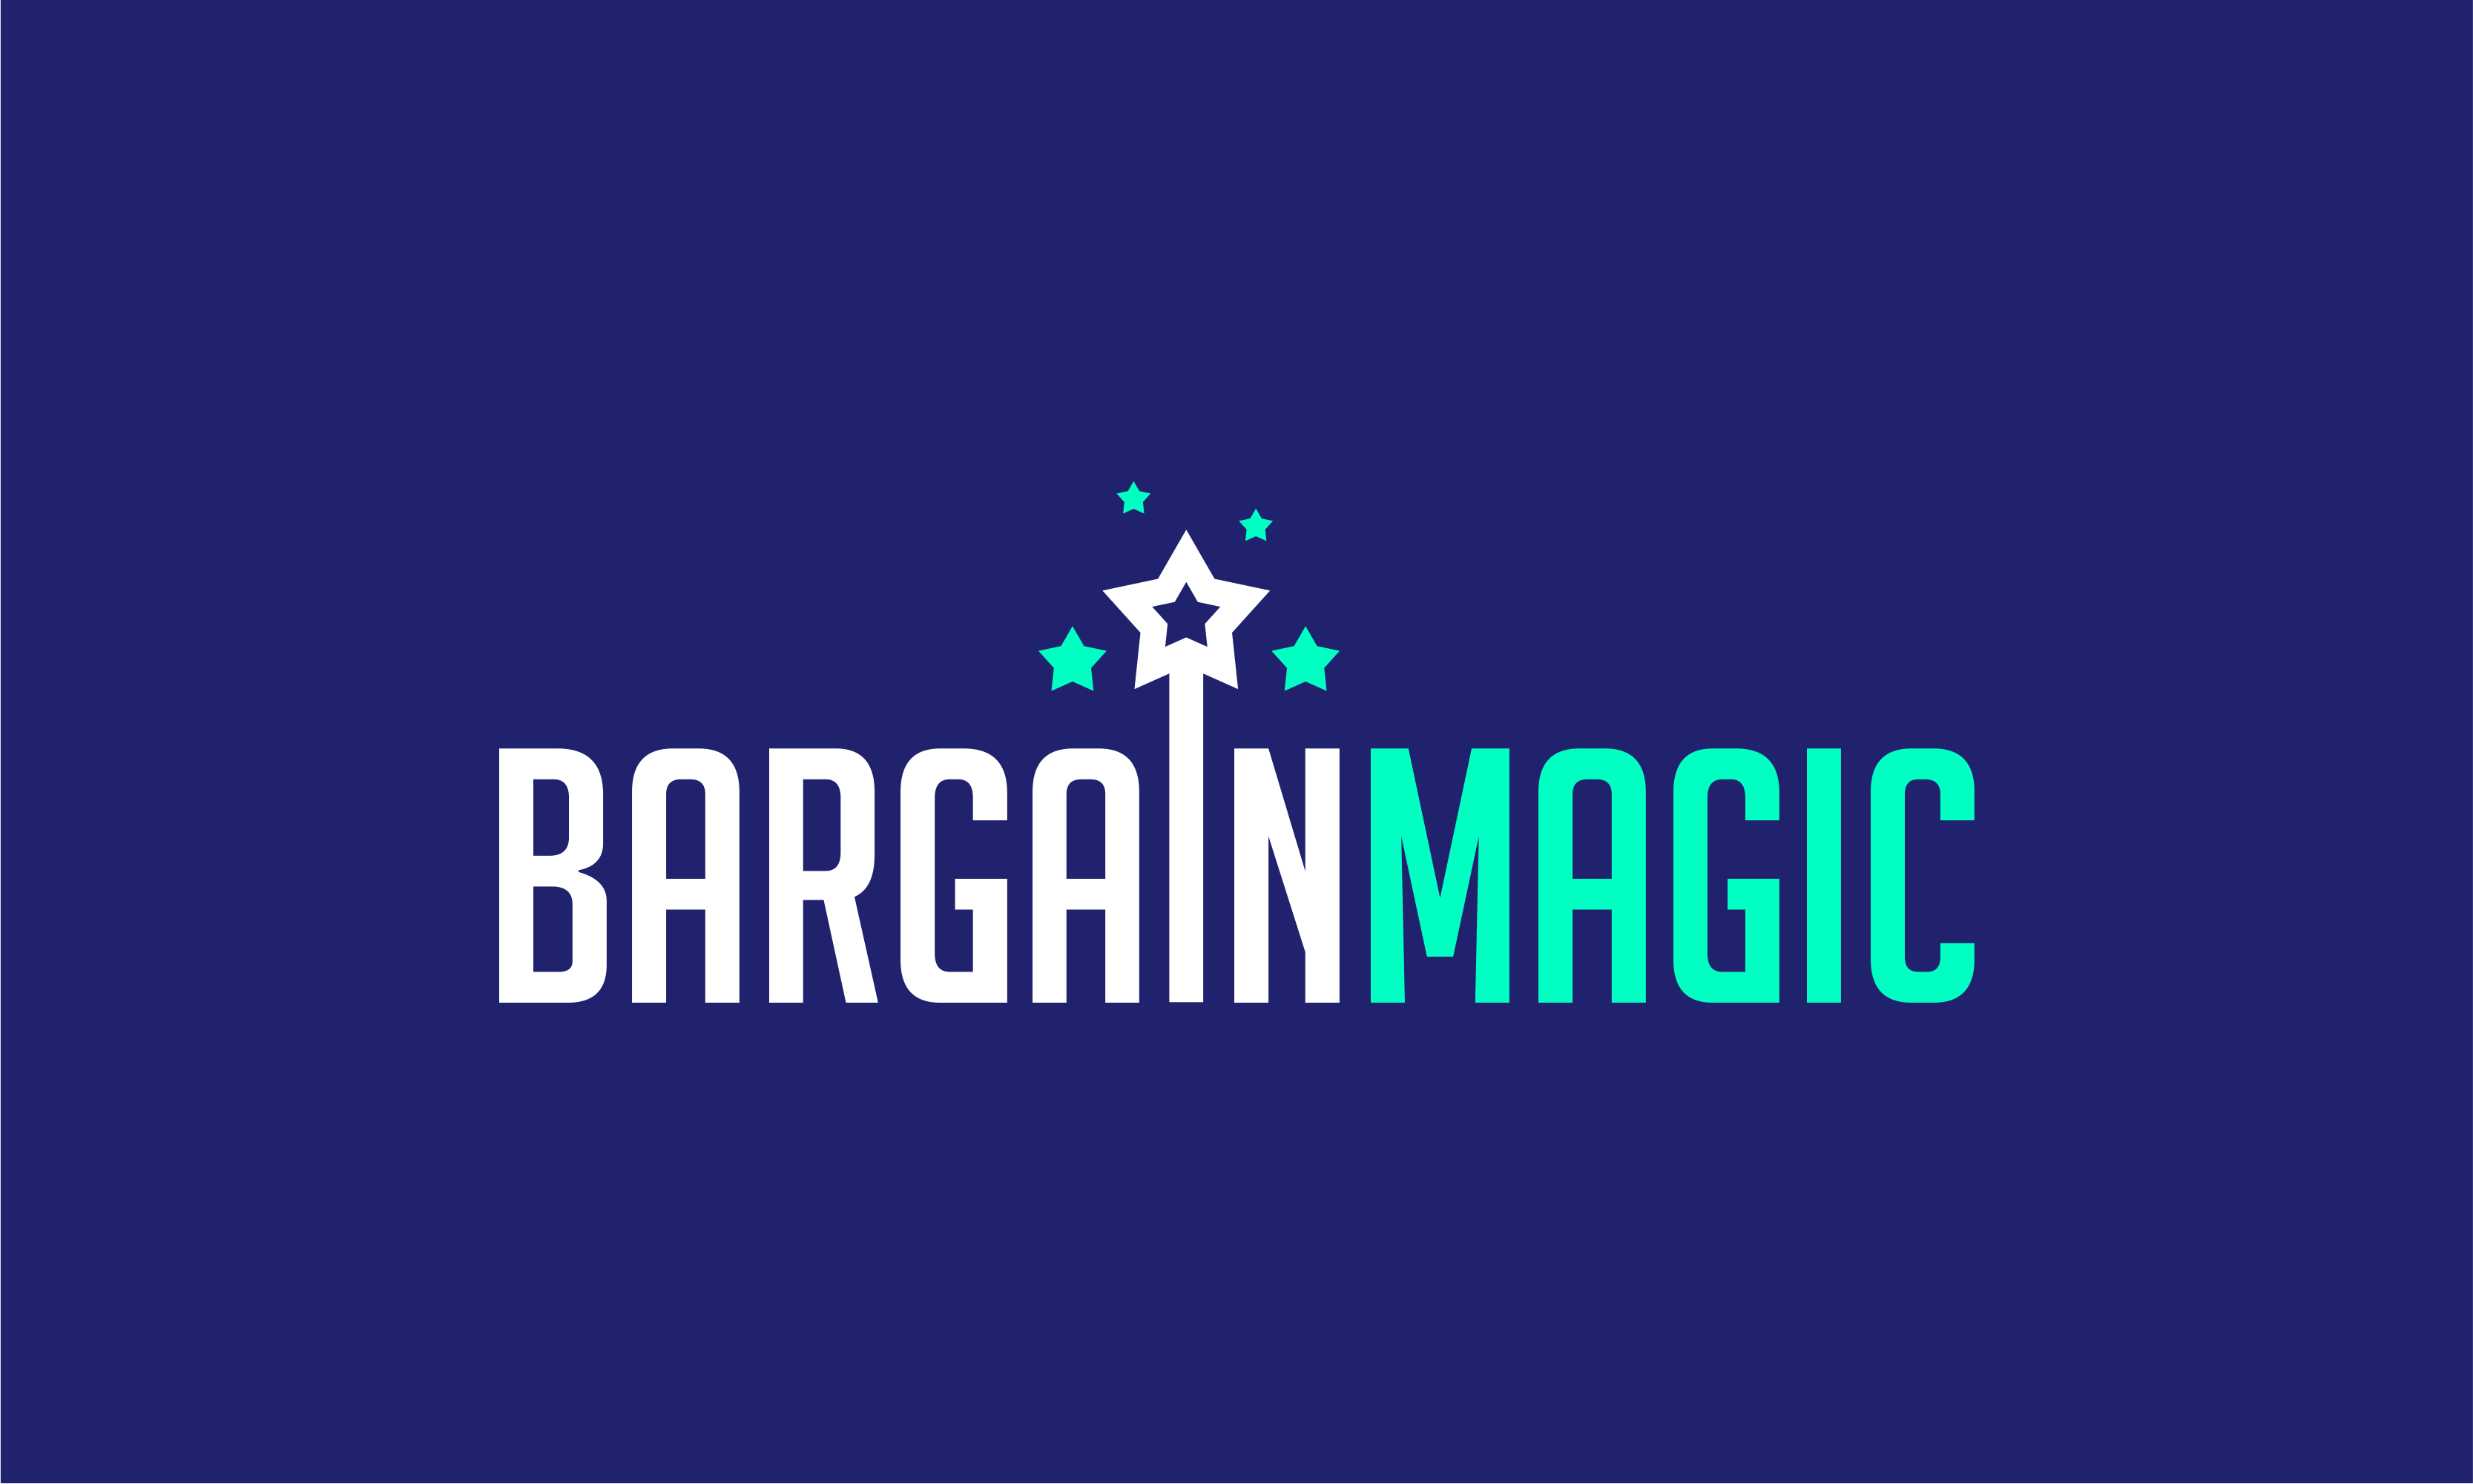 Bargainmagic